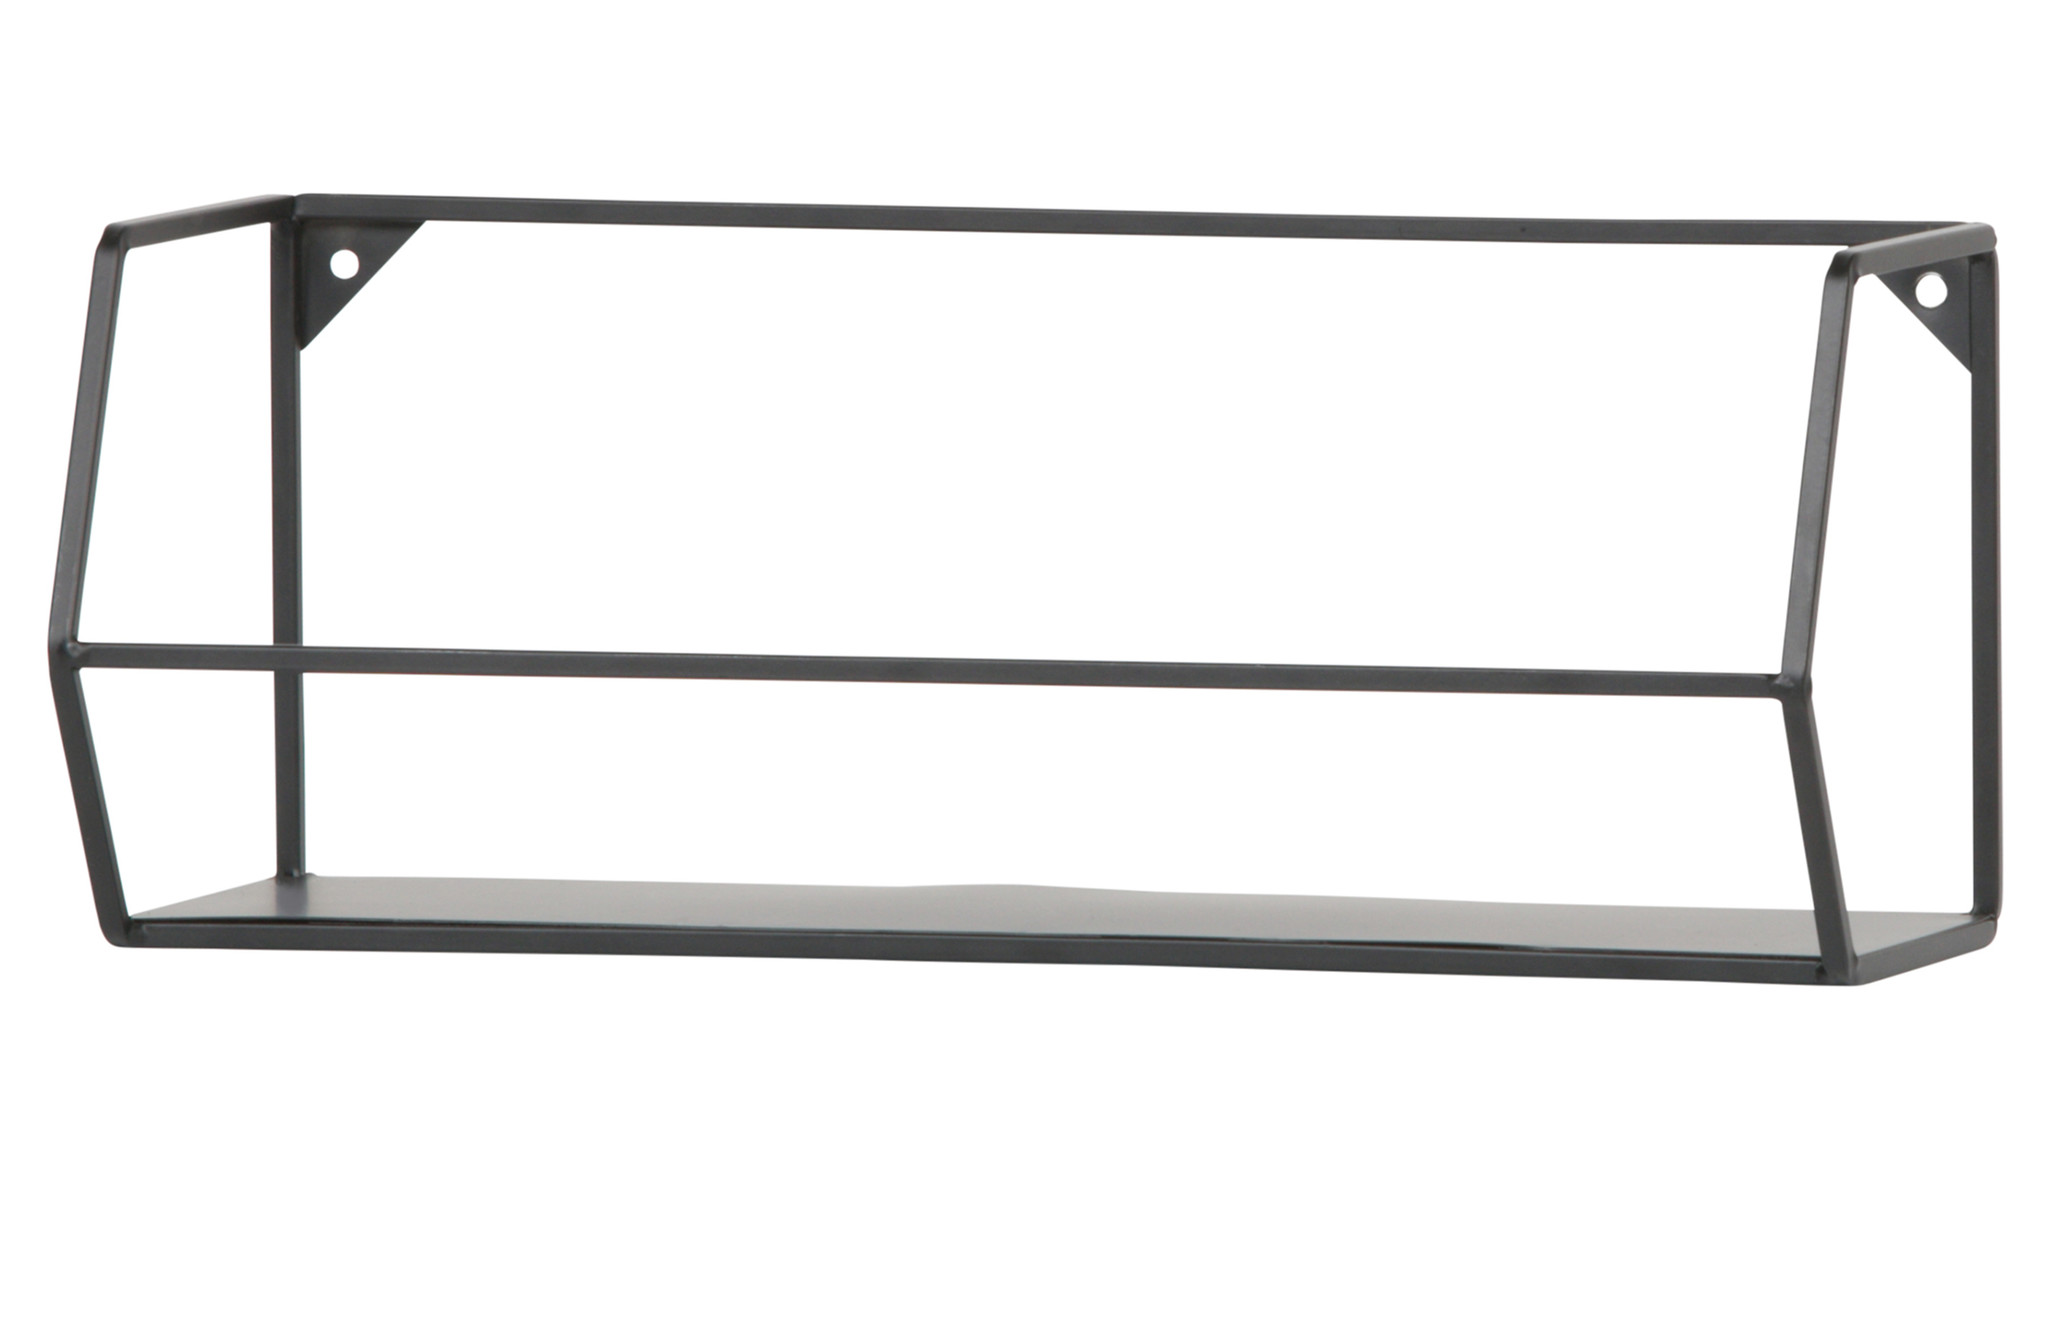 Woood wall shelf Zeta, black, 40 or 80 cm